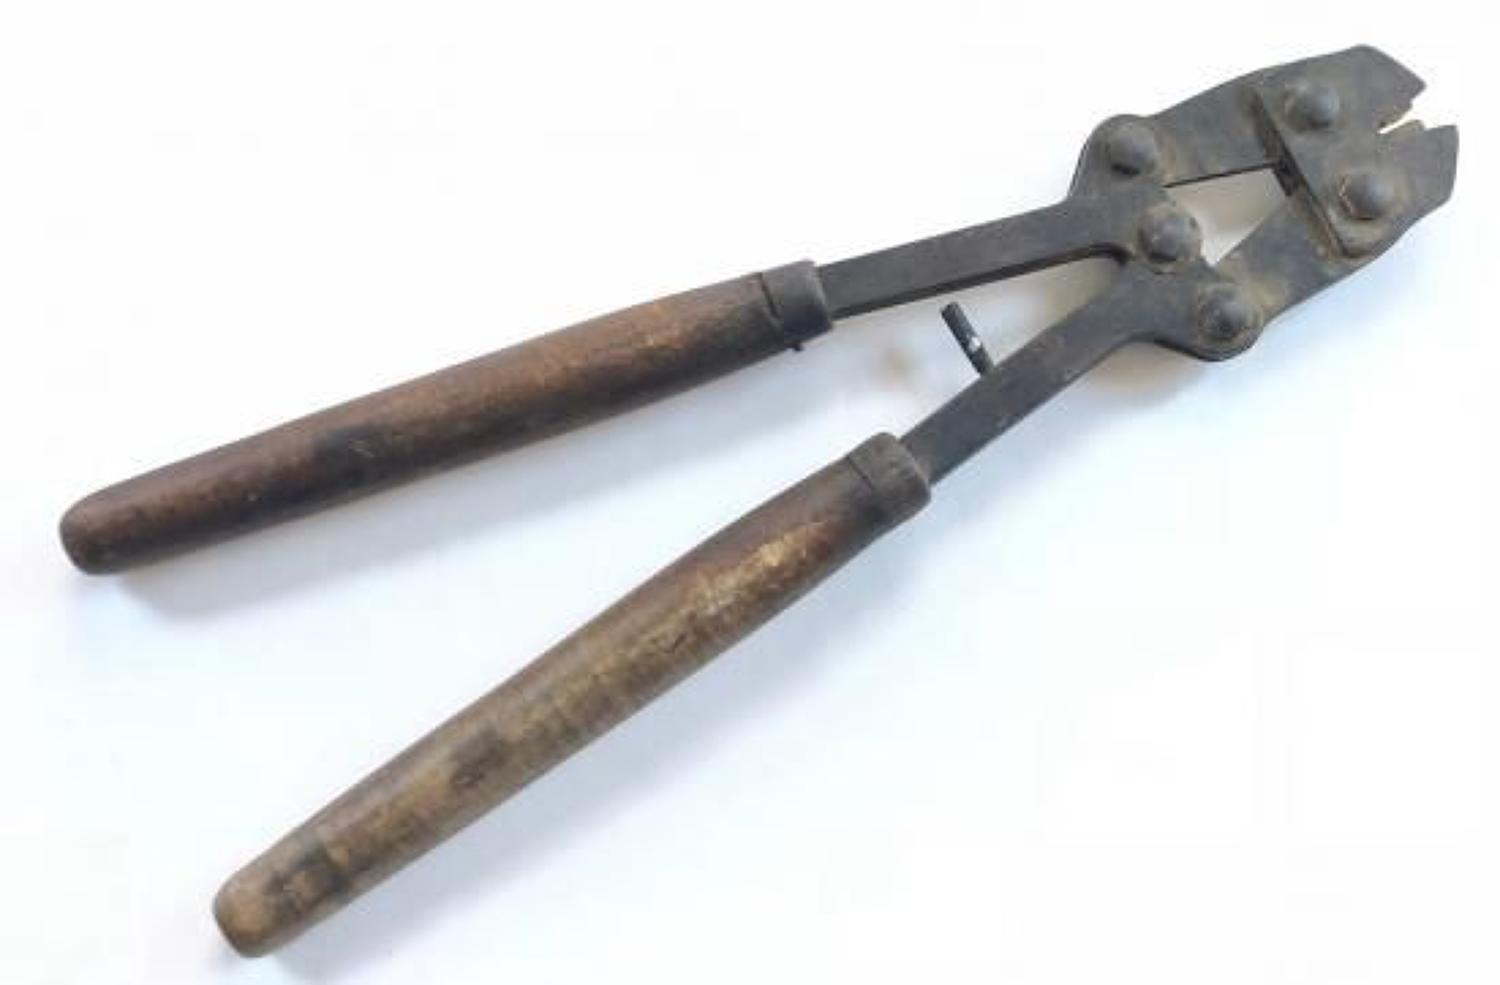 WW1 Pattern British Army Long Handle Wire Cutters.